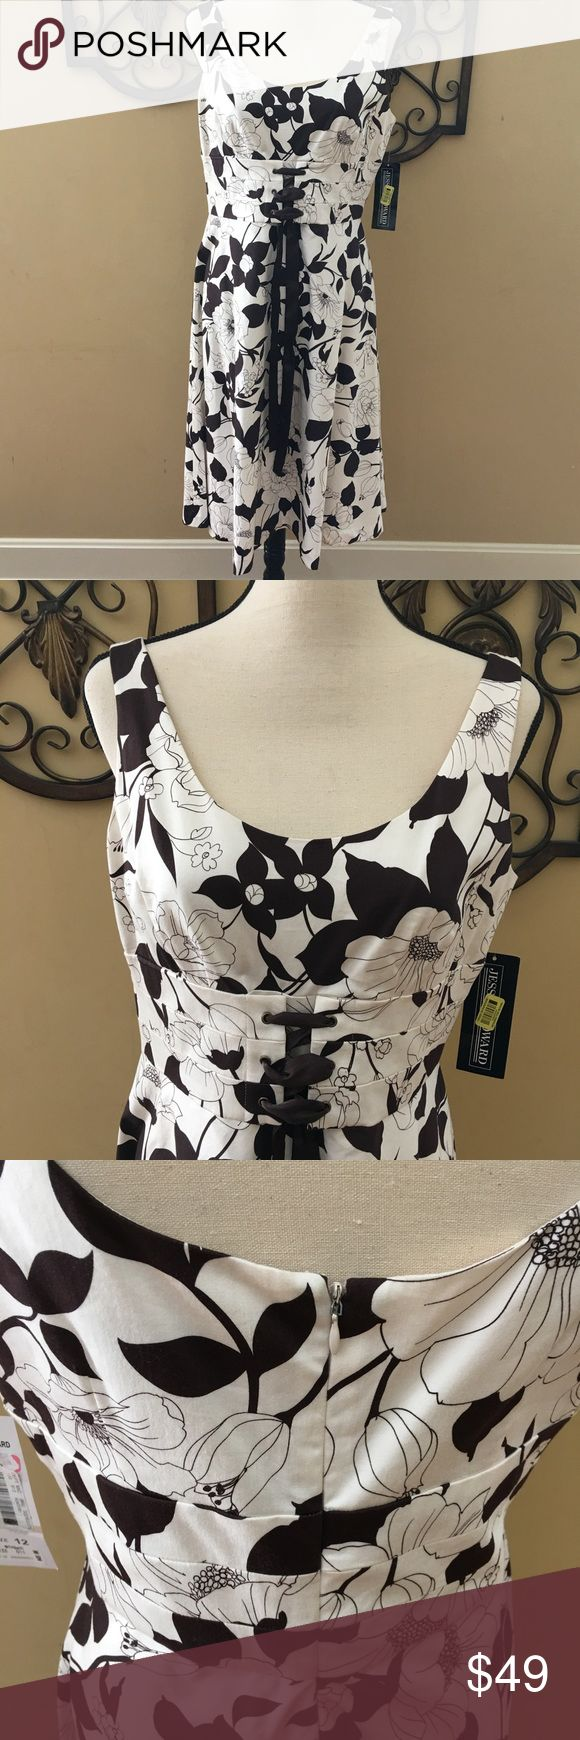 NWT Jessica Howard dress in size 12 NWT Jessica Howard flower dress in size 12. Under bust corset look with brown ties. Fit and flare dress. Very pretty. Jessica Howard Dresses Midi